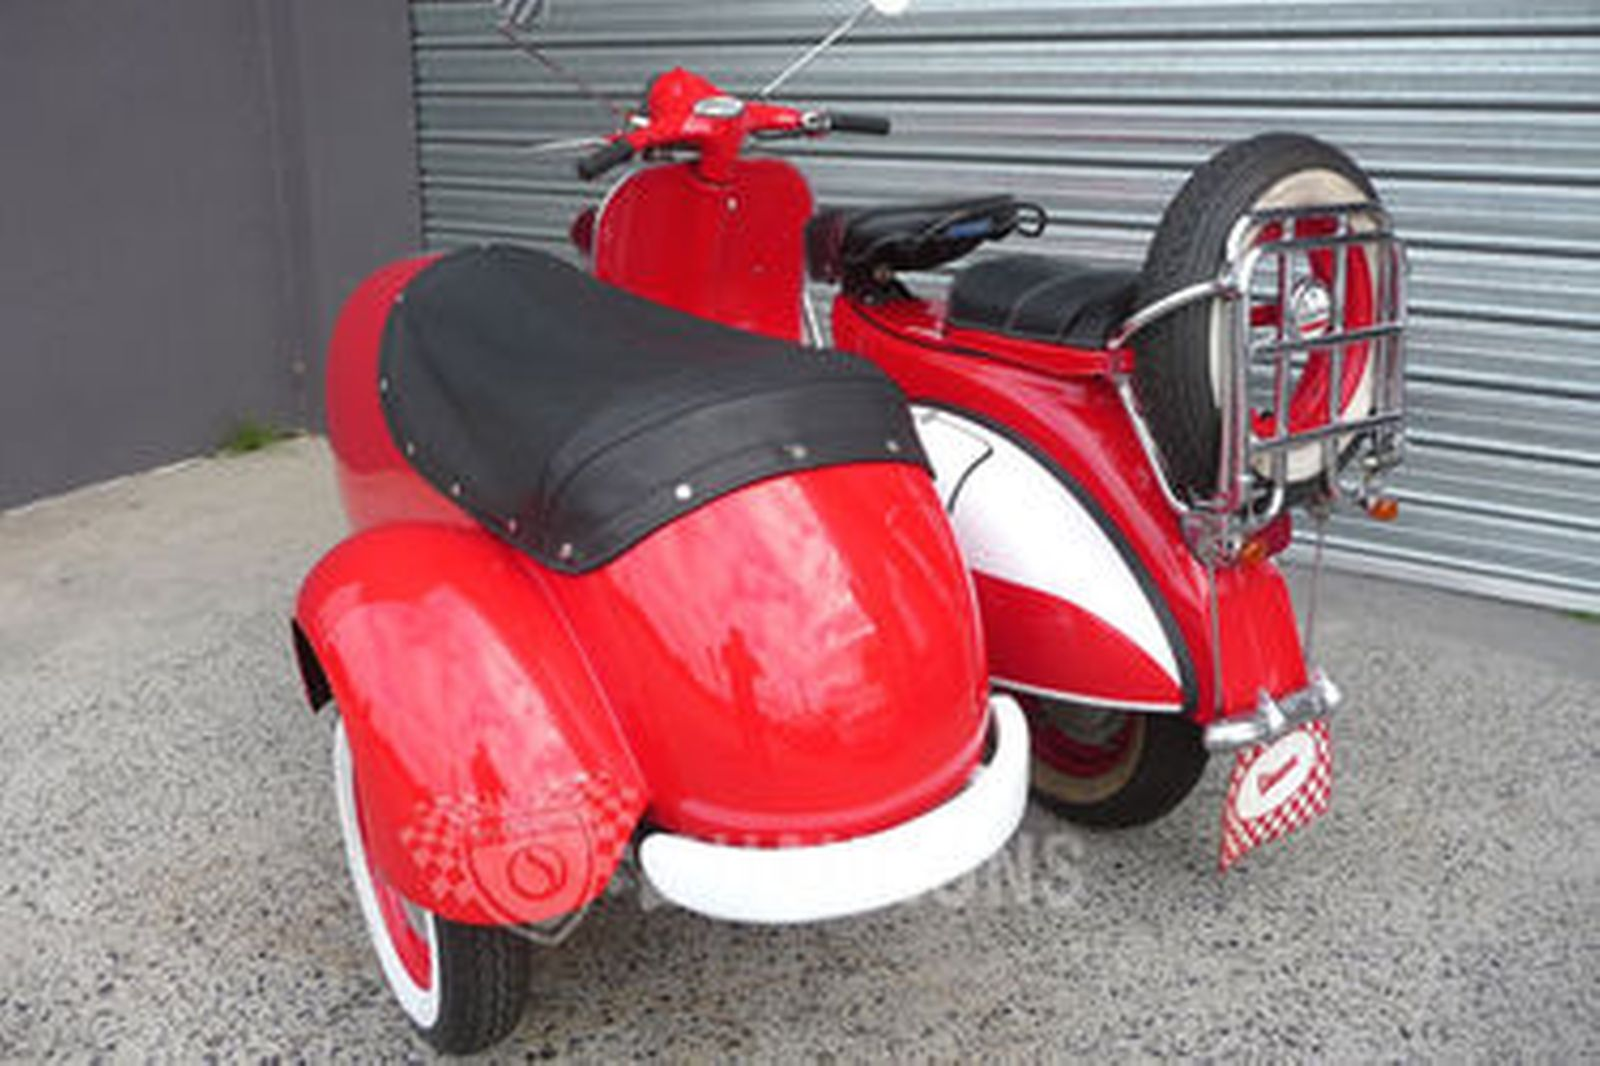 Online Car Auction >> Sold: Vespa 150cc Scooter with Sidecar Auctions - Lot 31 - Shannons